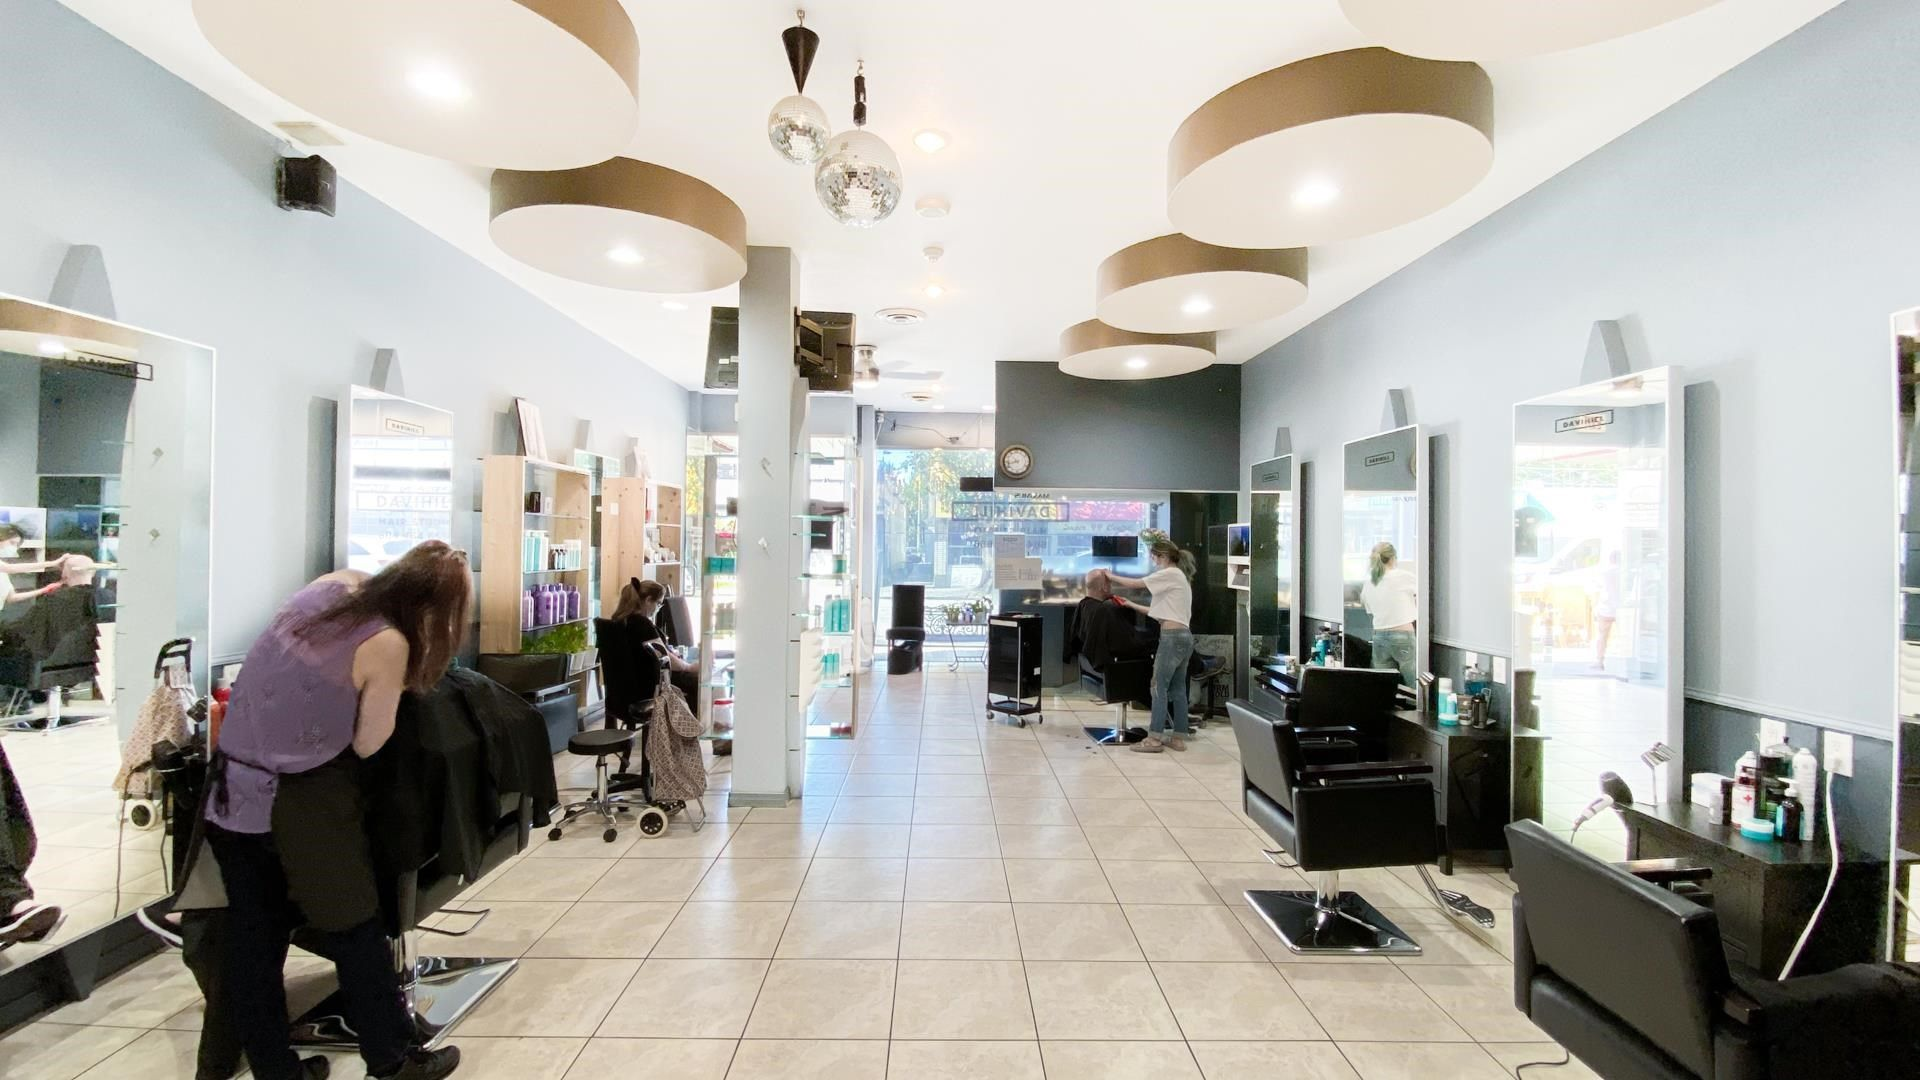 Main Photo: 1221 DAVIE Street in Vancouver: West End VW Business for sale (Vancouver West)  : MLS®# C8039504